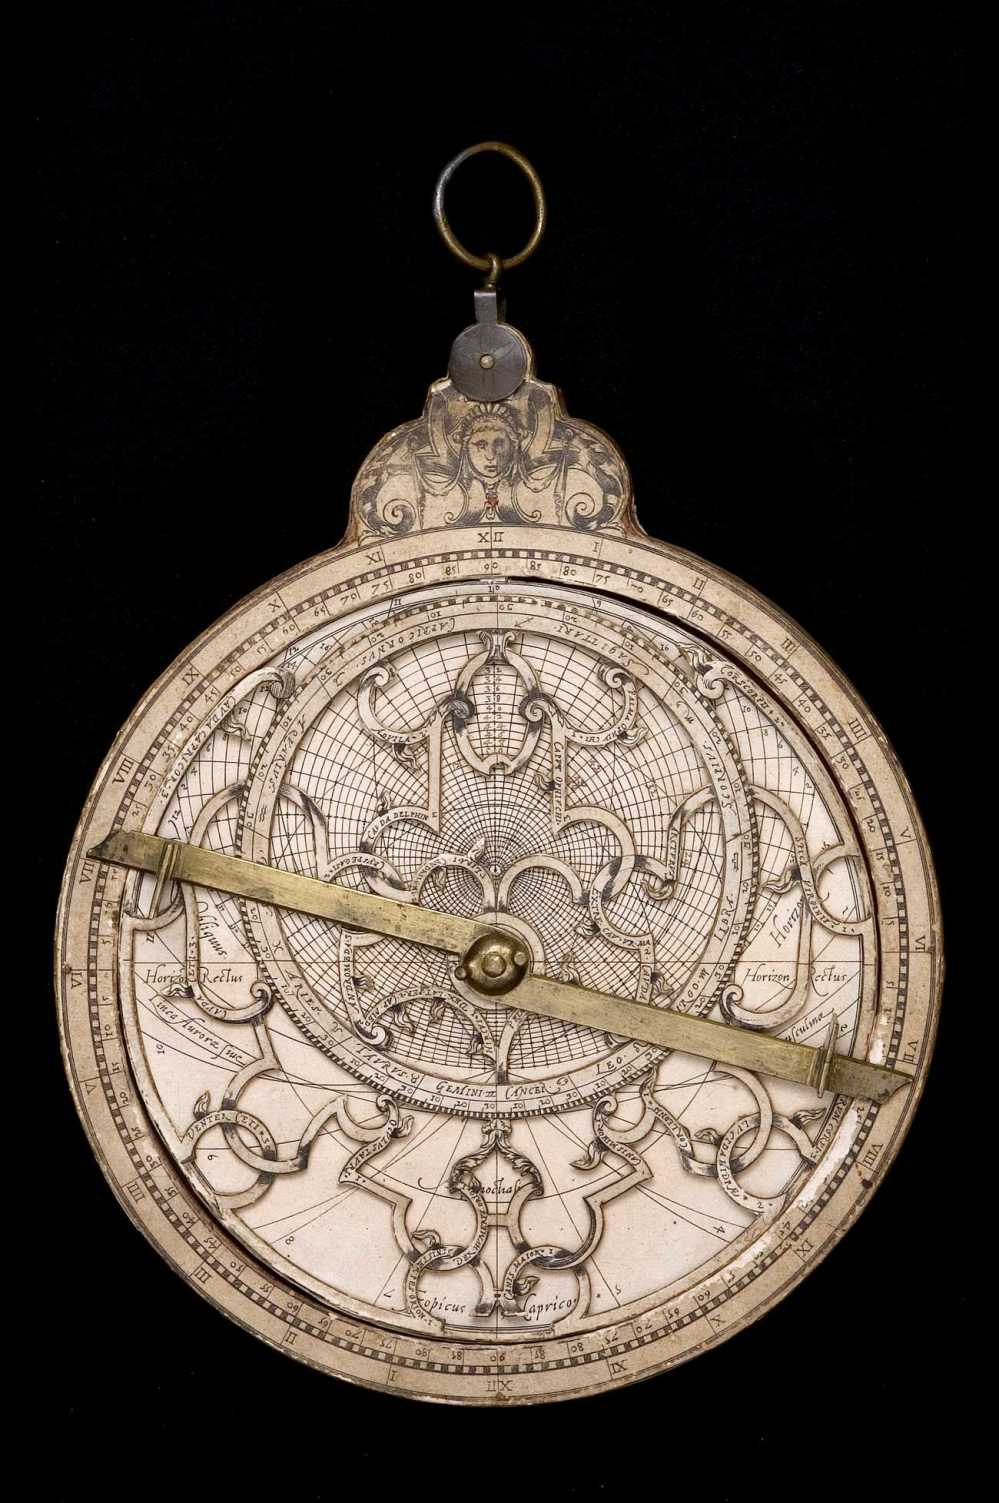 preview image for Paper Astrolabe, by Philippe Danfrie, Paris, 1584